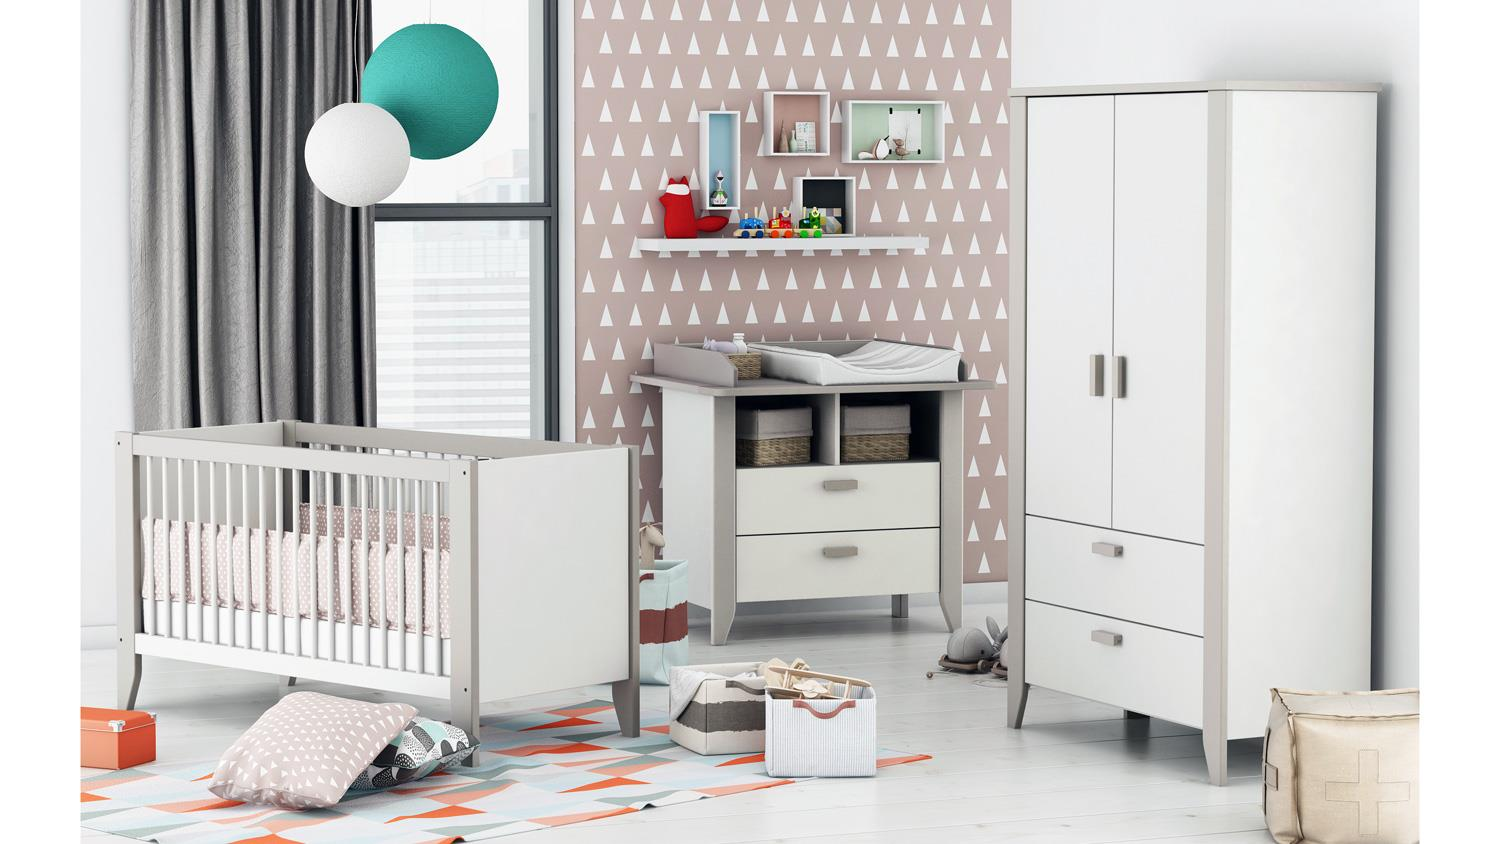 babyzimmer noar kinderzimmer komplett set in wei taupe grau 3 teilig. Black Bedroom Furniture Sets. Home Design Ideas